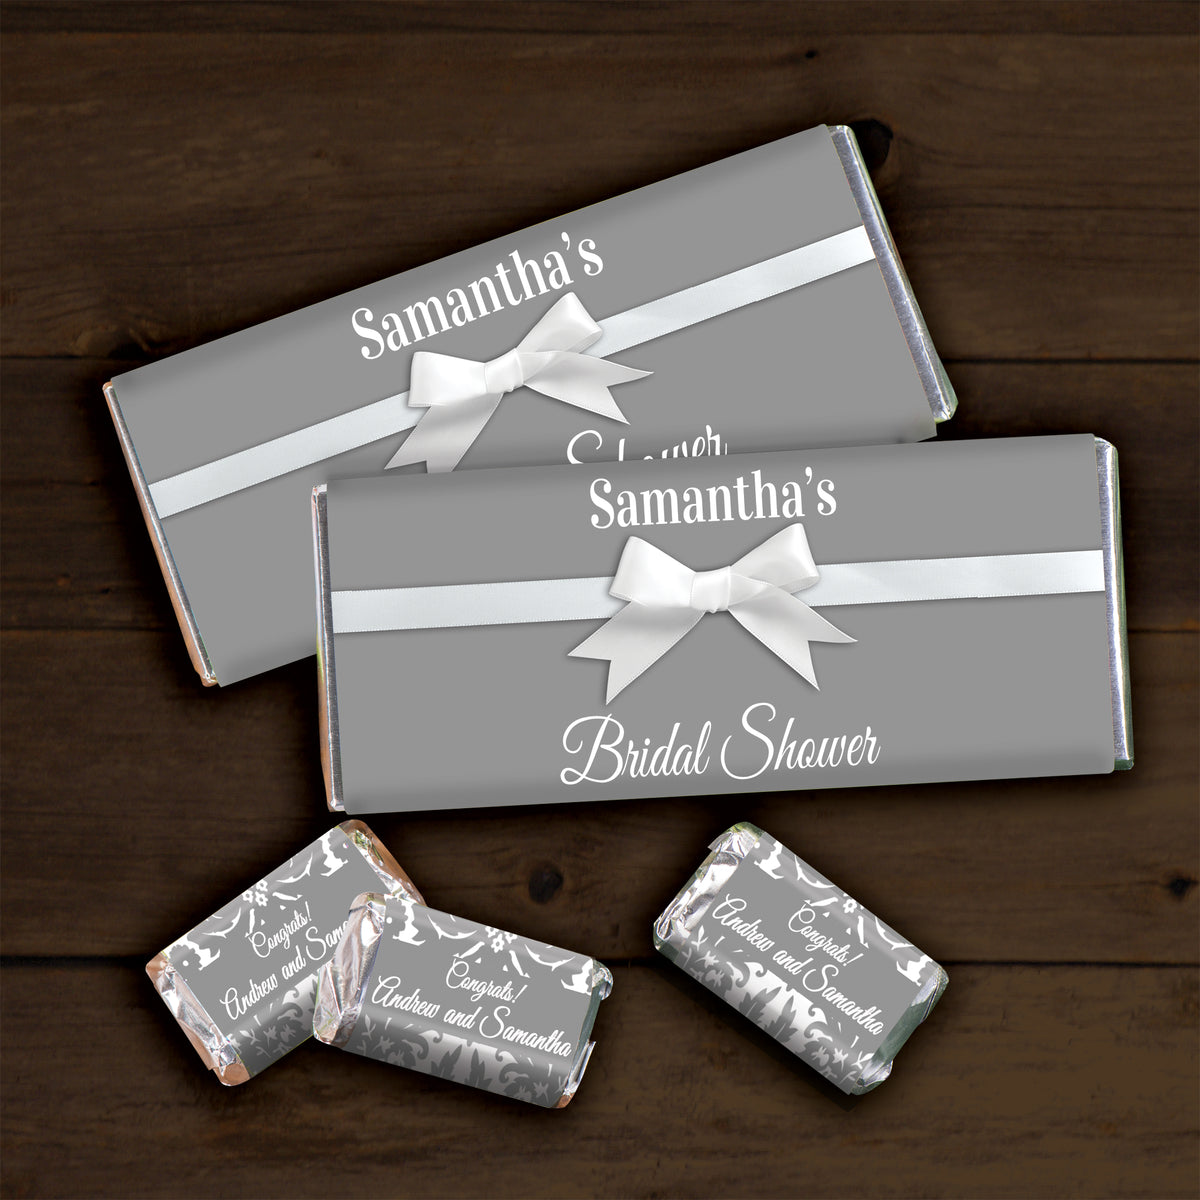 Hershey's Chocolate Paris Nights Personalized Candy Bars